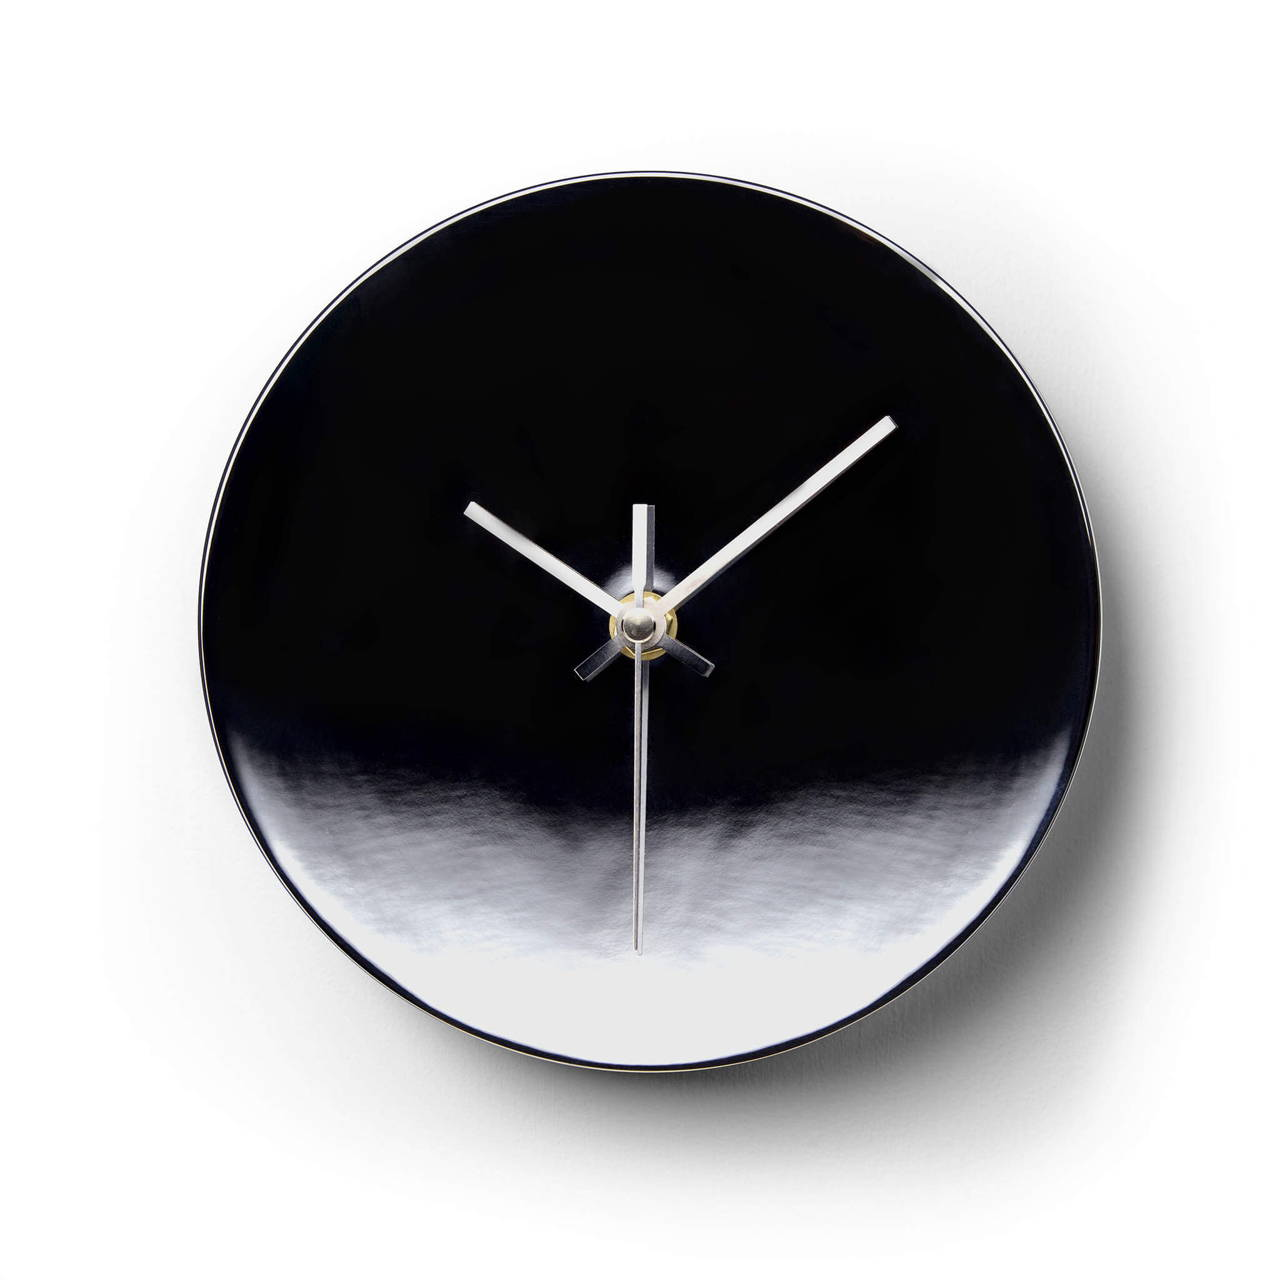 Clock in Chrome finish